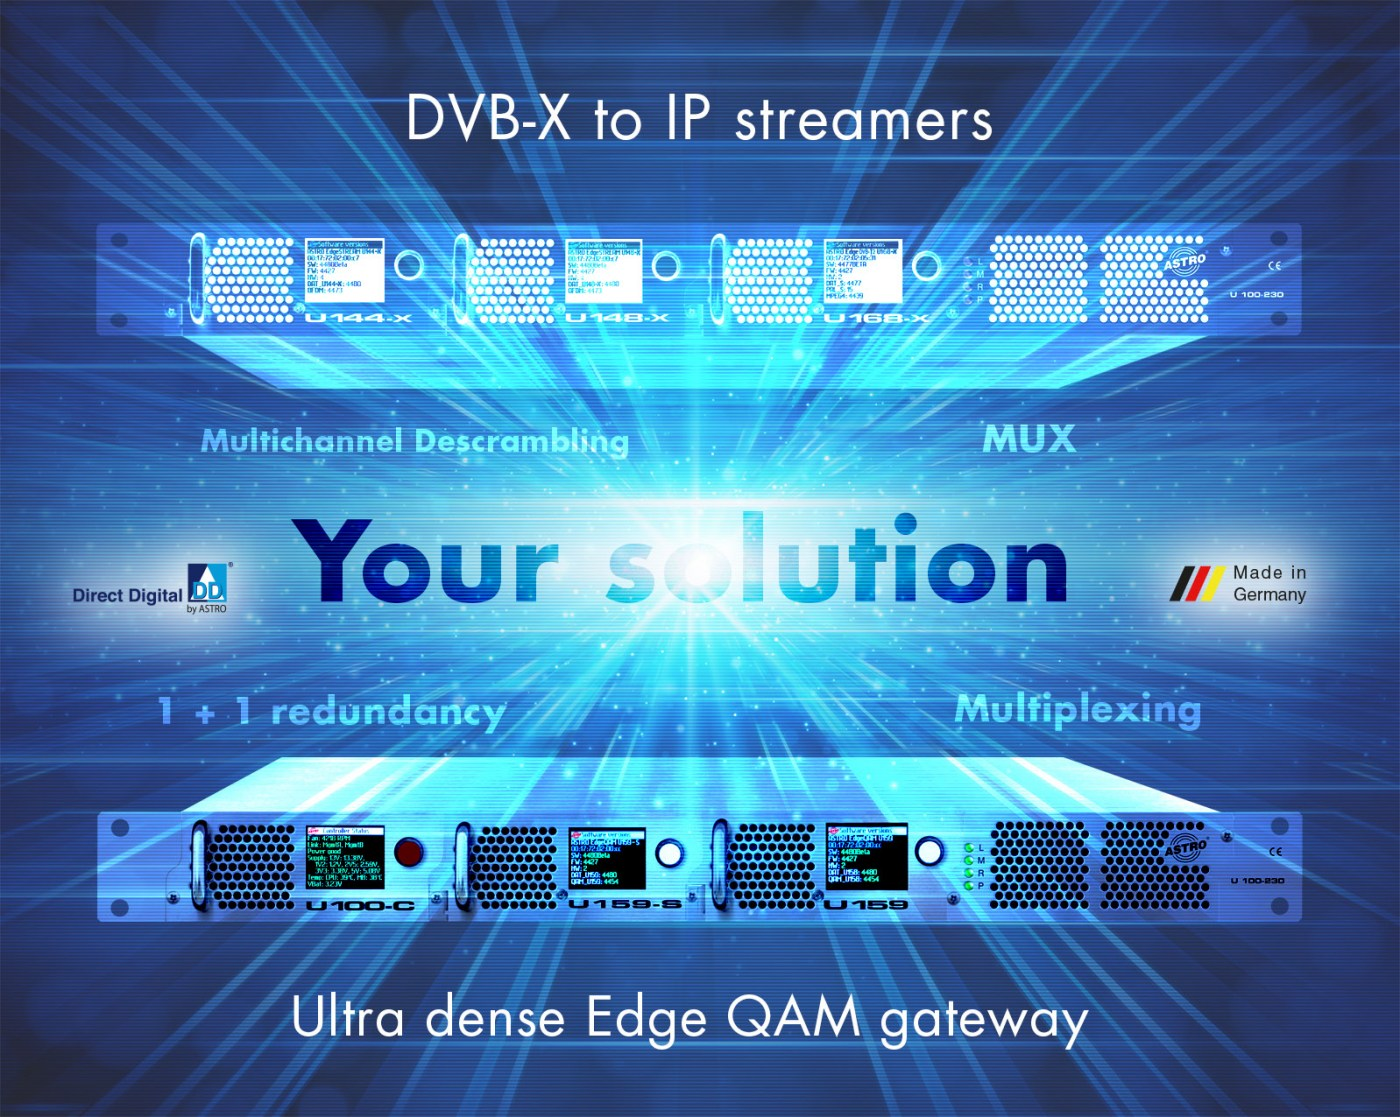 DVB-X to IP streamers